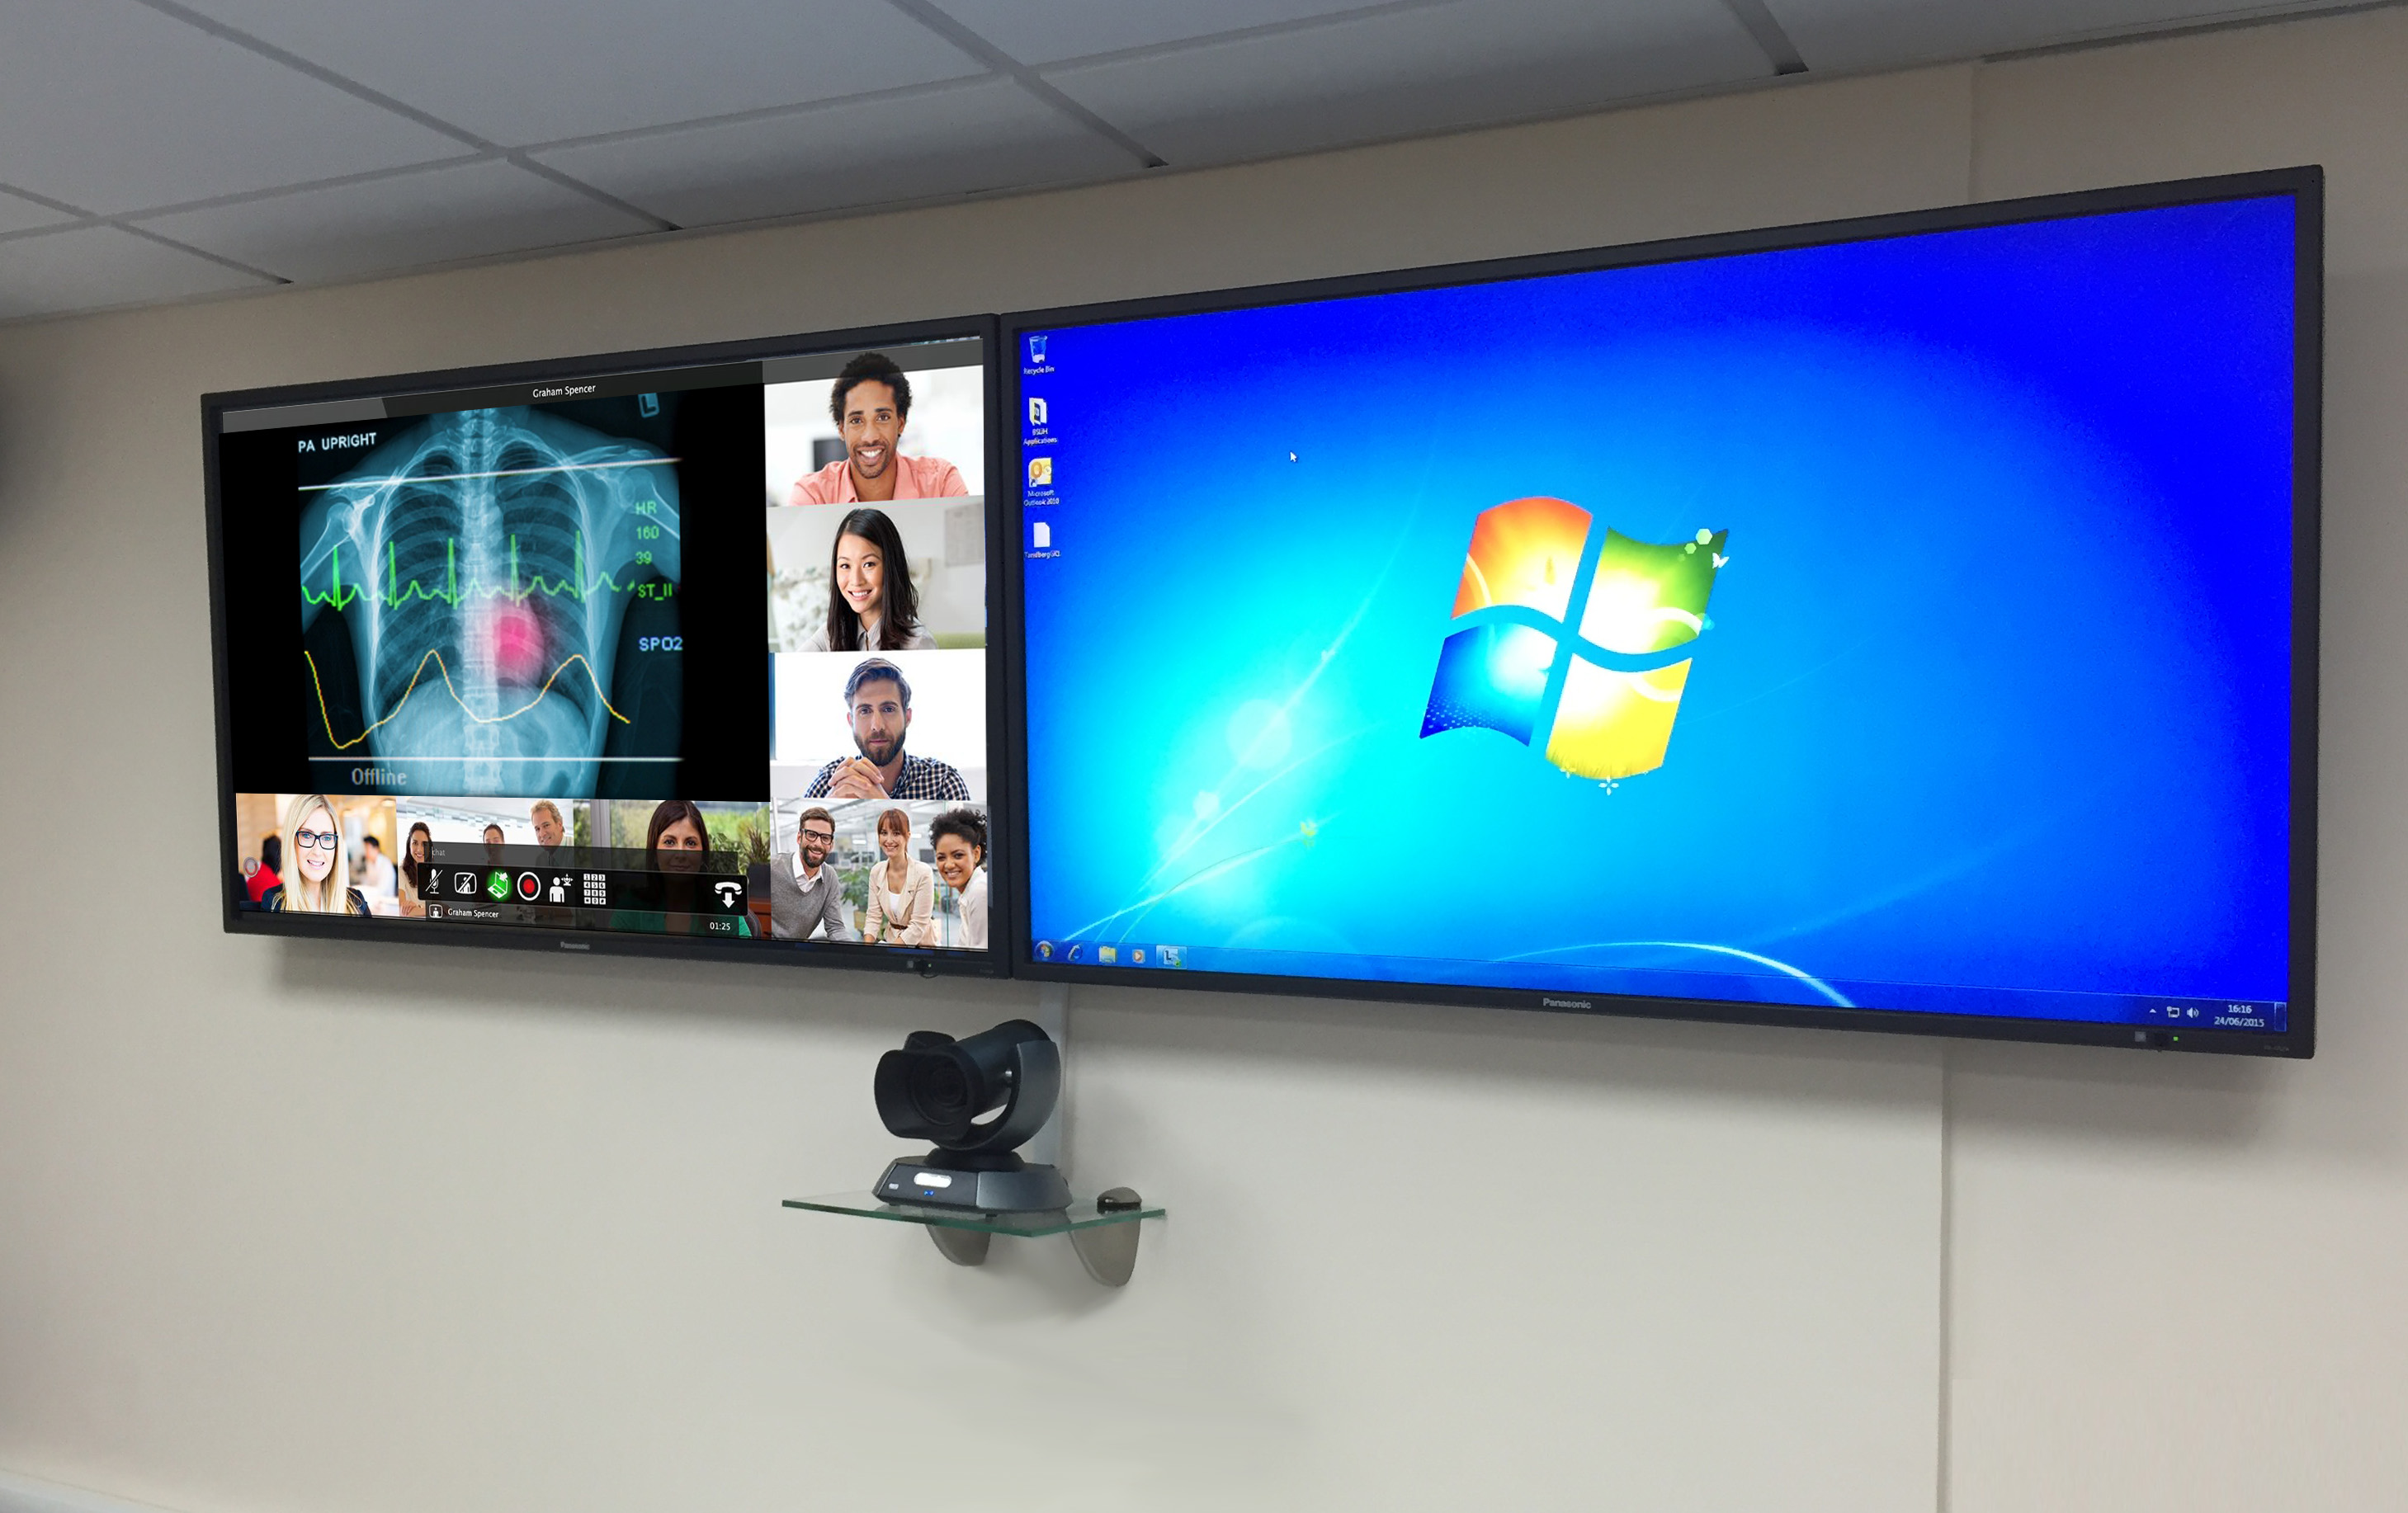 BSUH Lifesize Video Conferencing dual screen display